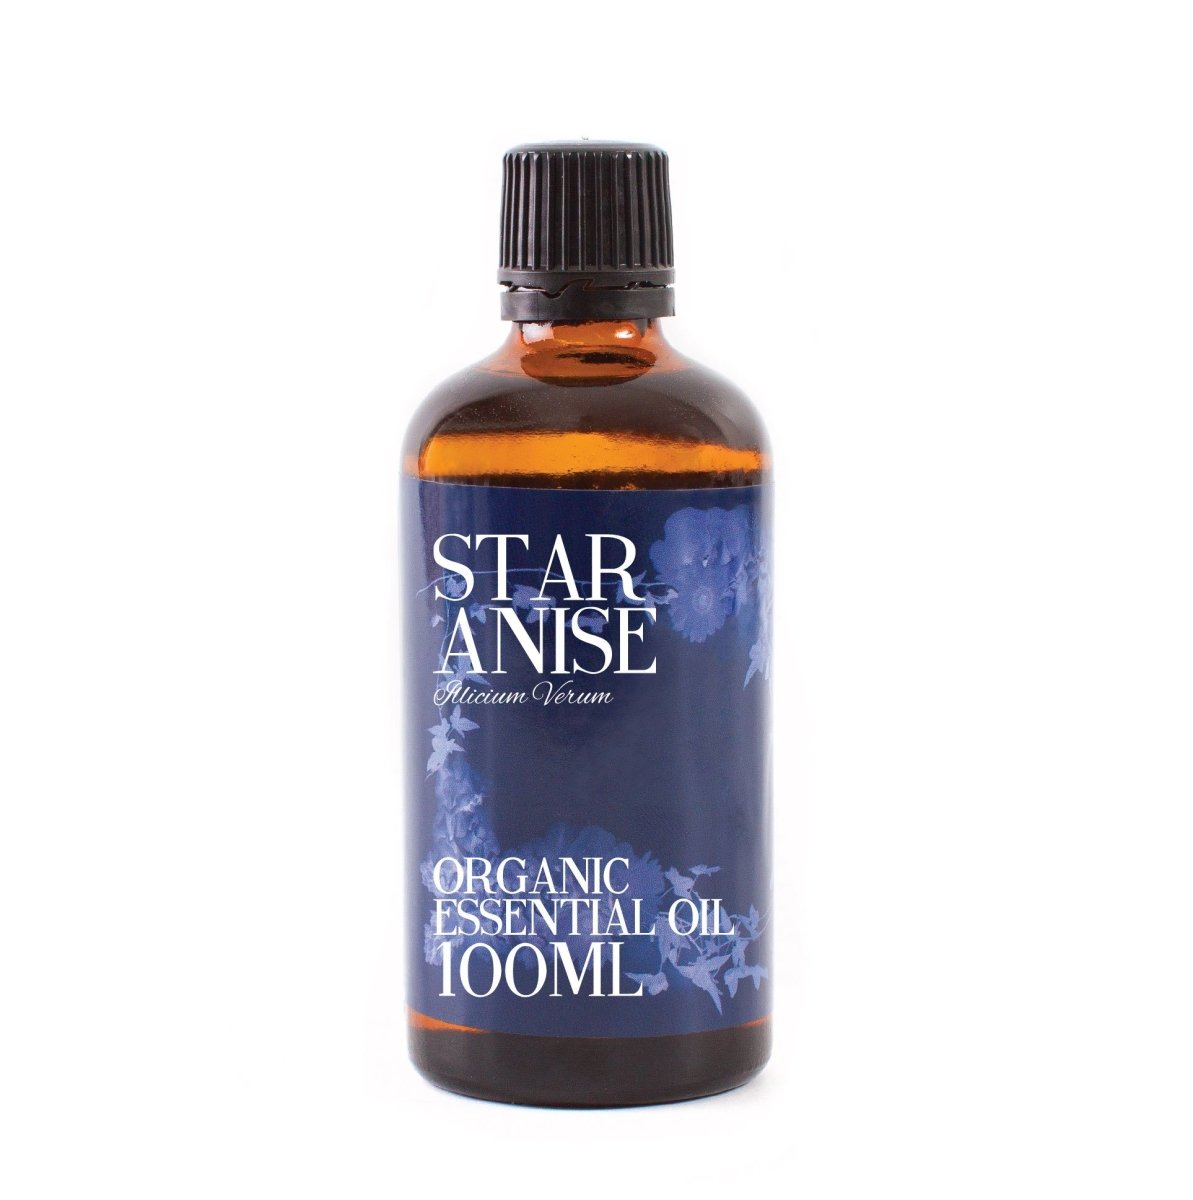 Star Anise Organic Essential Oil - Mystic Moments UK